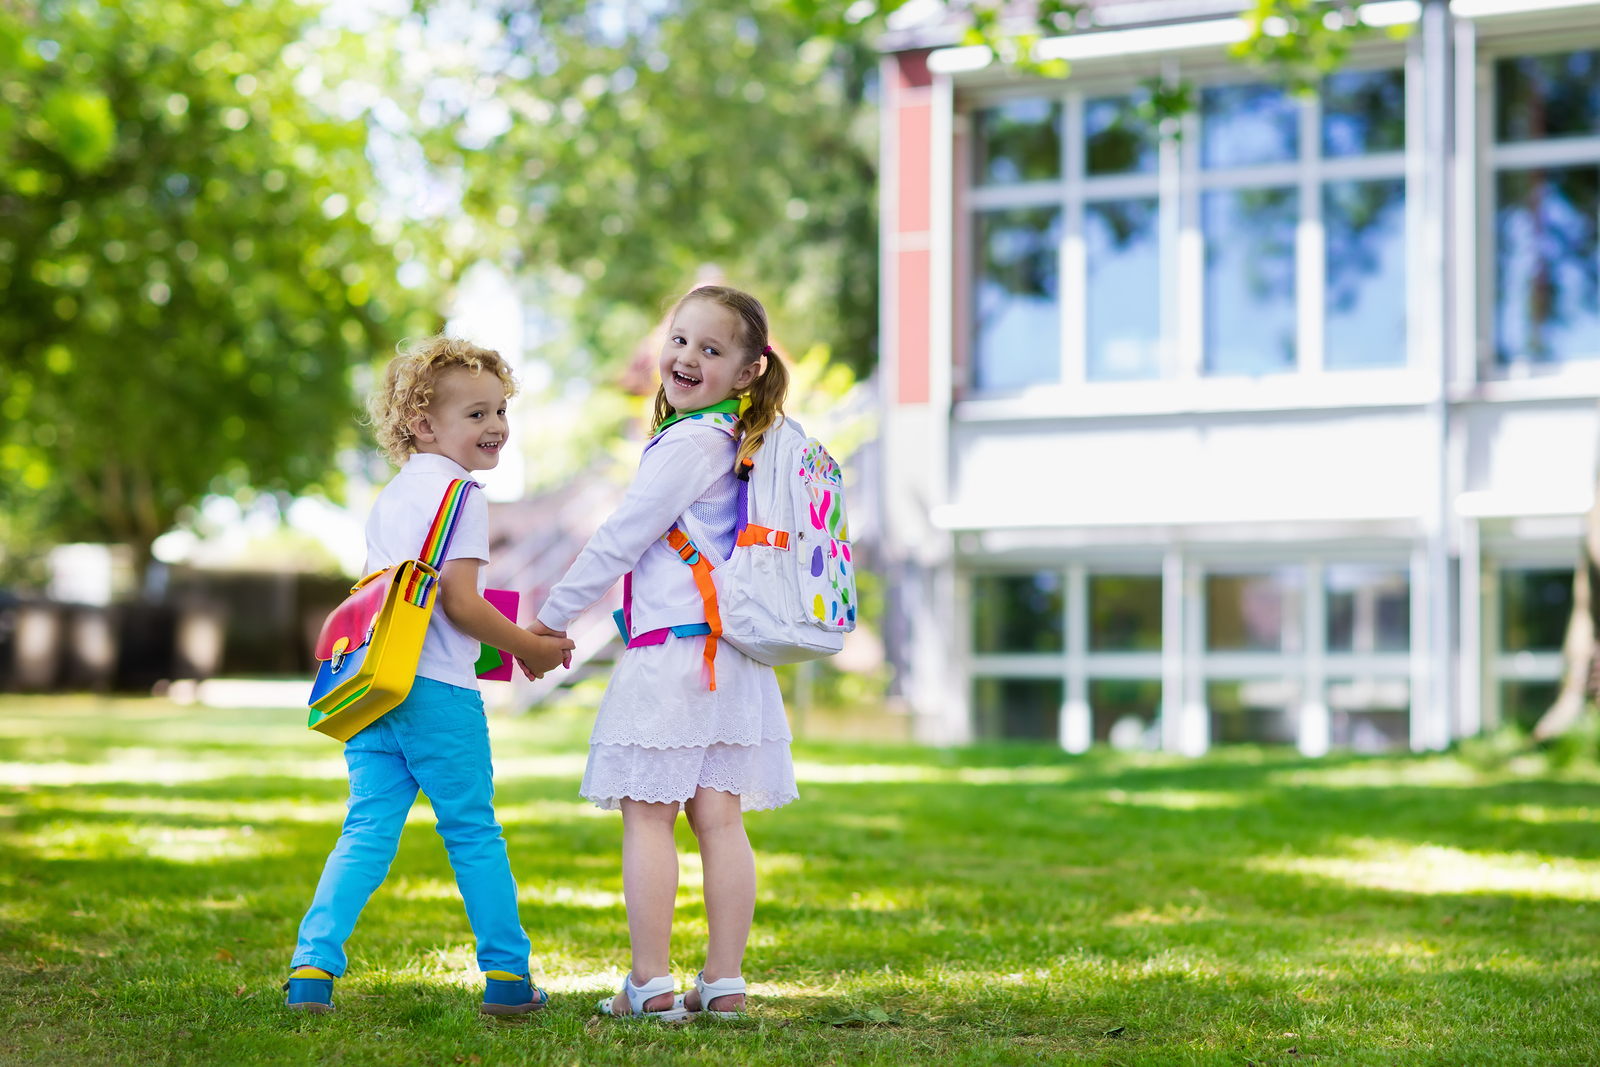 bigstock-Children-Going-Back-To-School--189124399.jpg